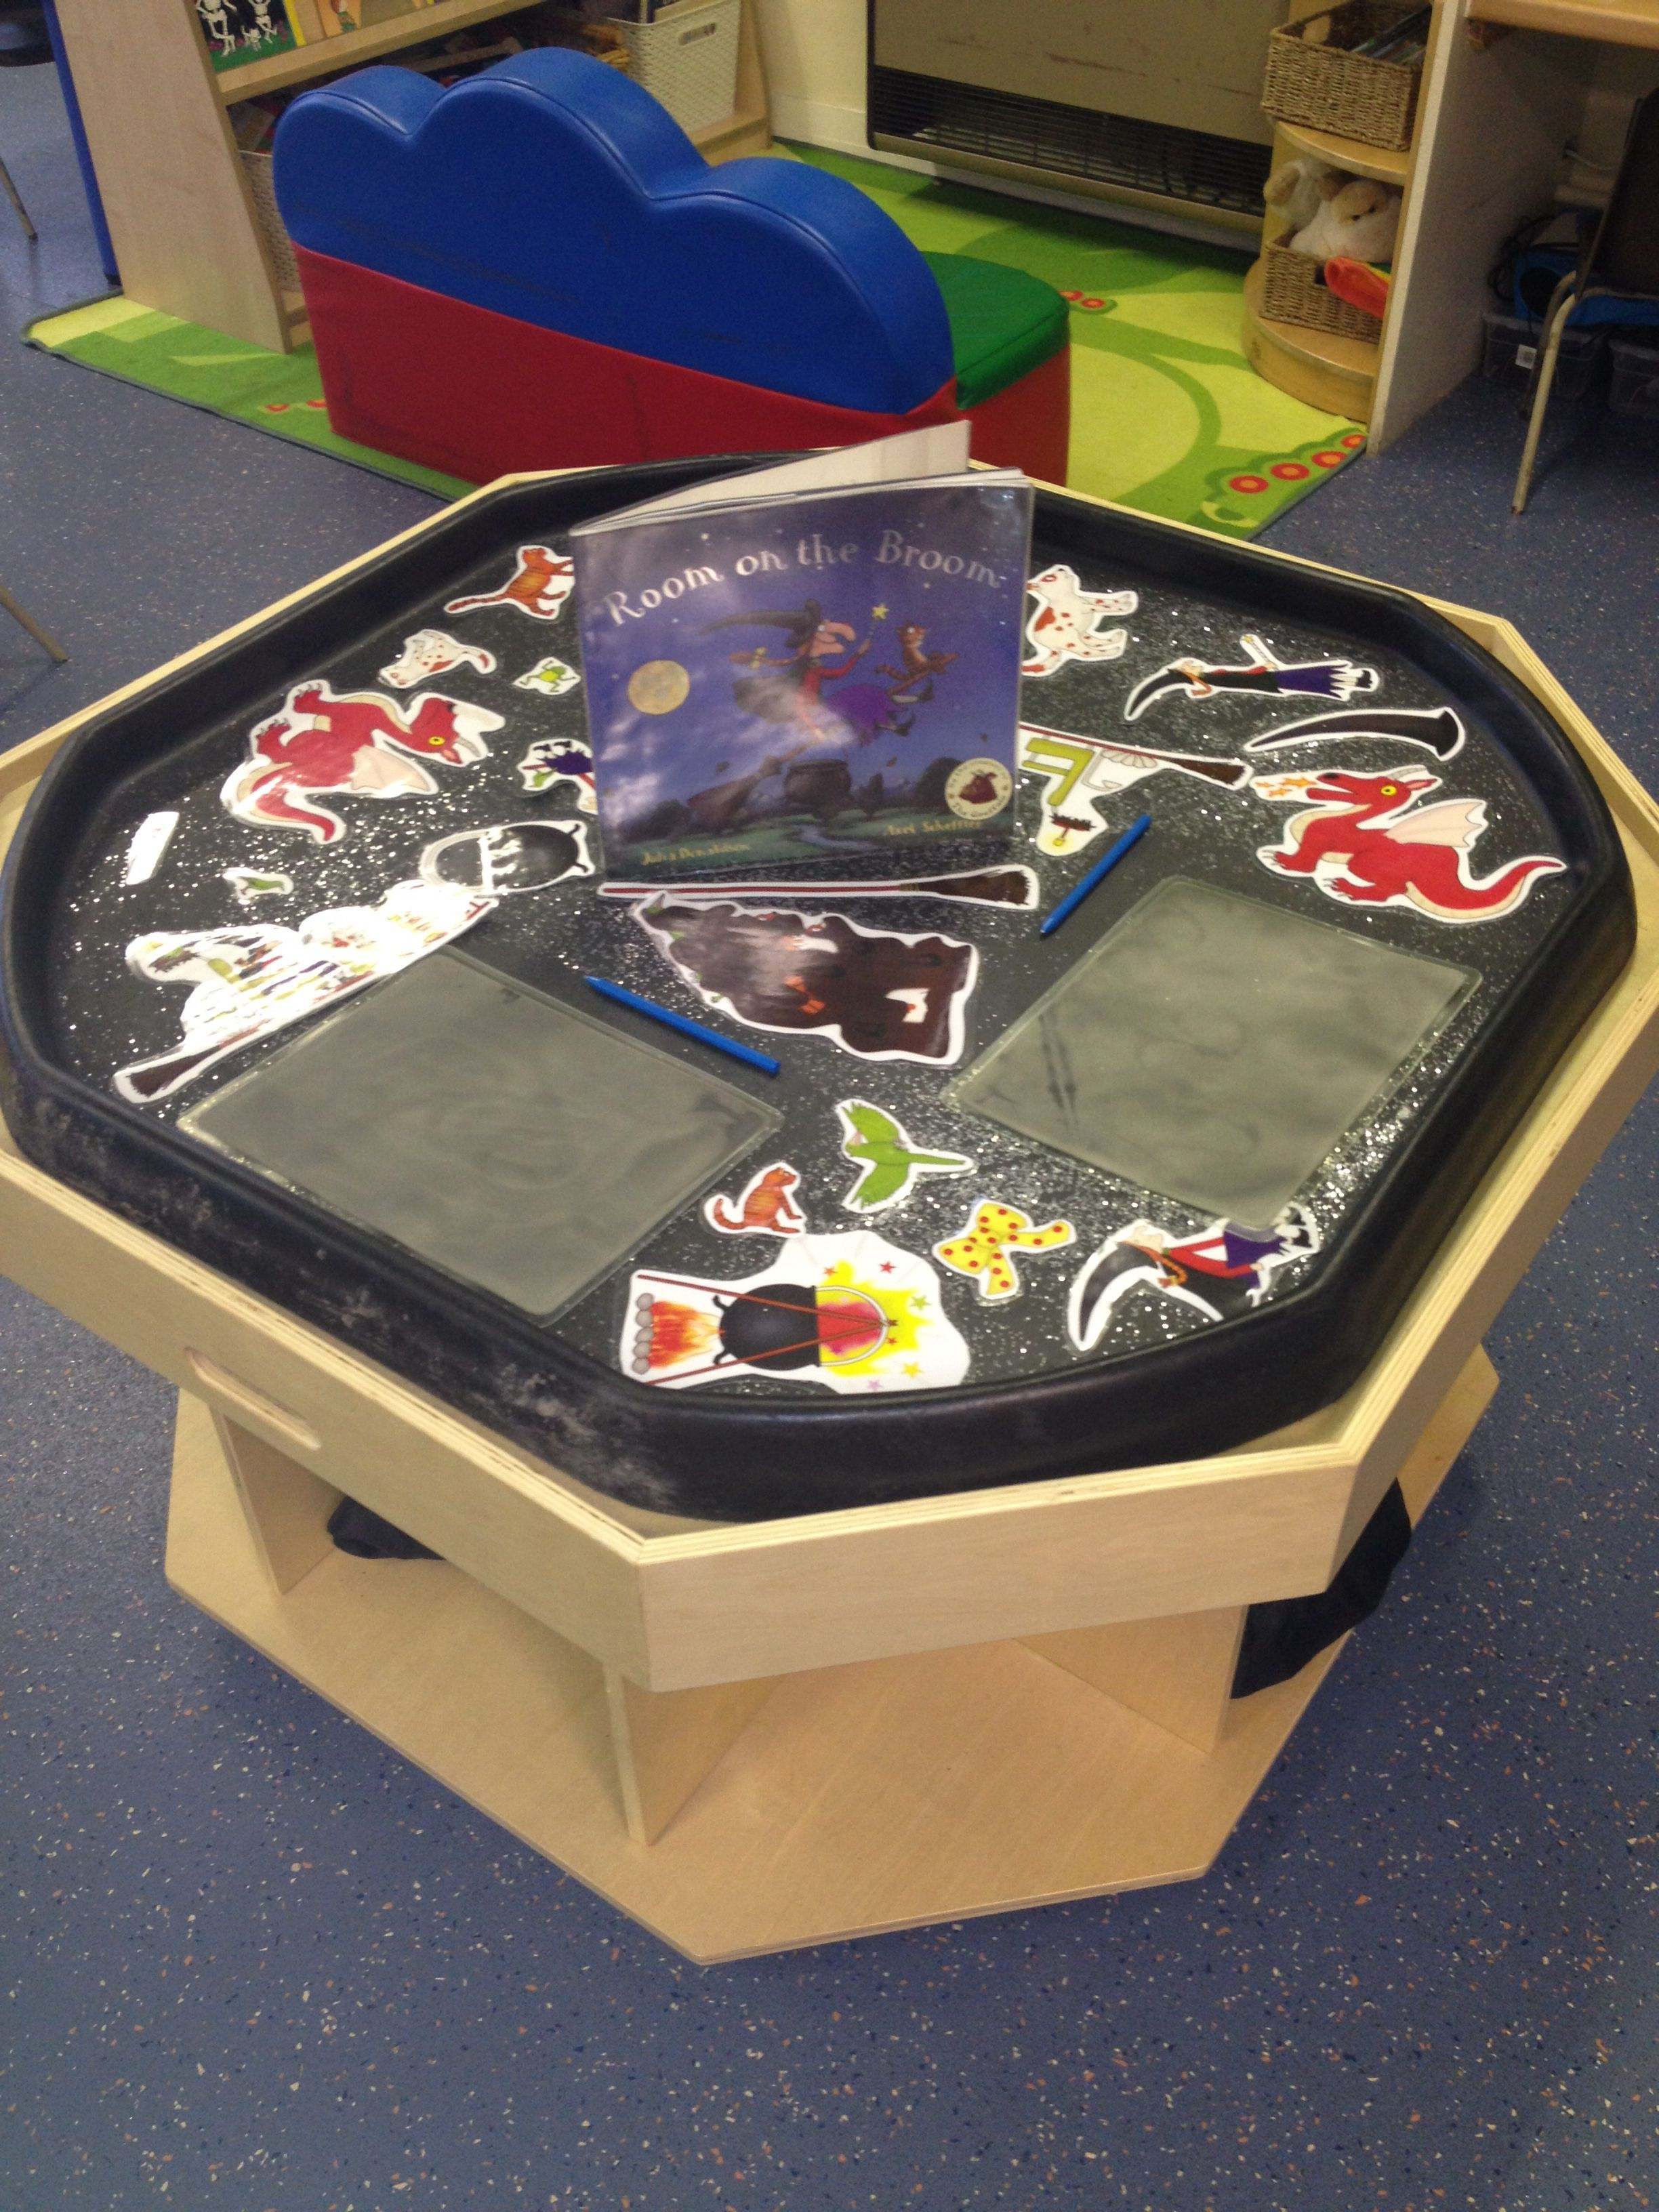 Room on the broom - pictures of story sequencing and writing slates